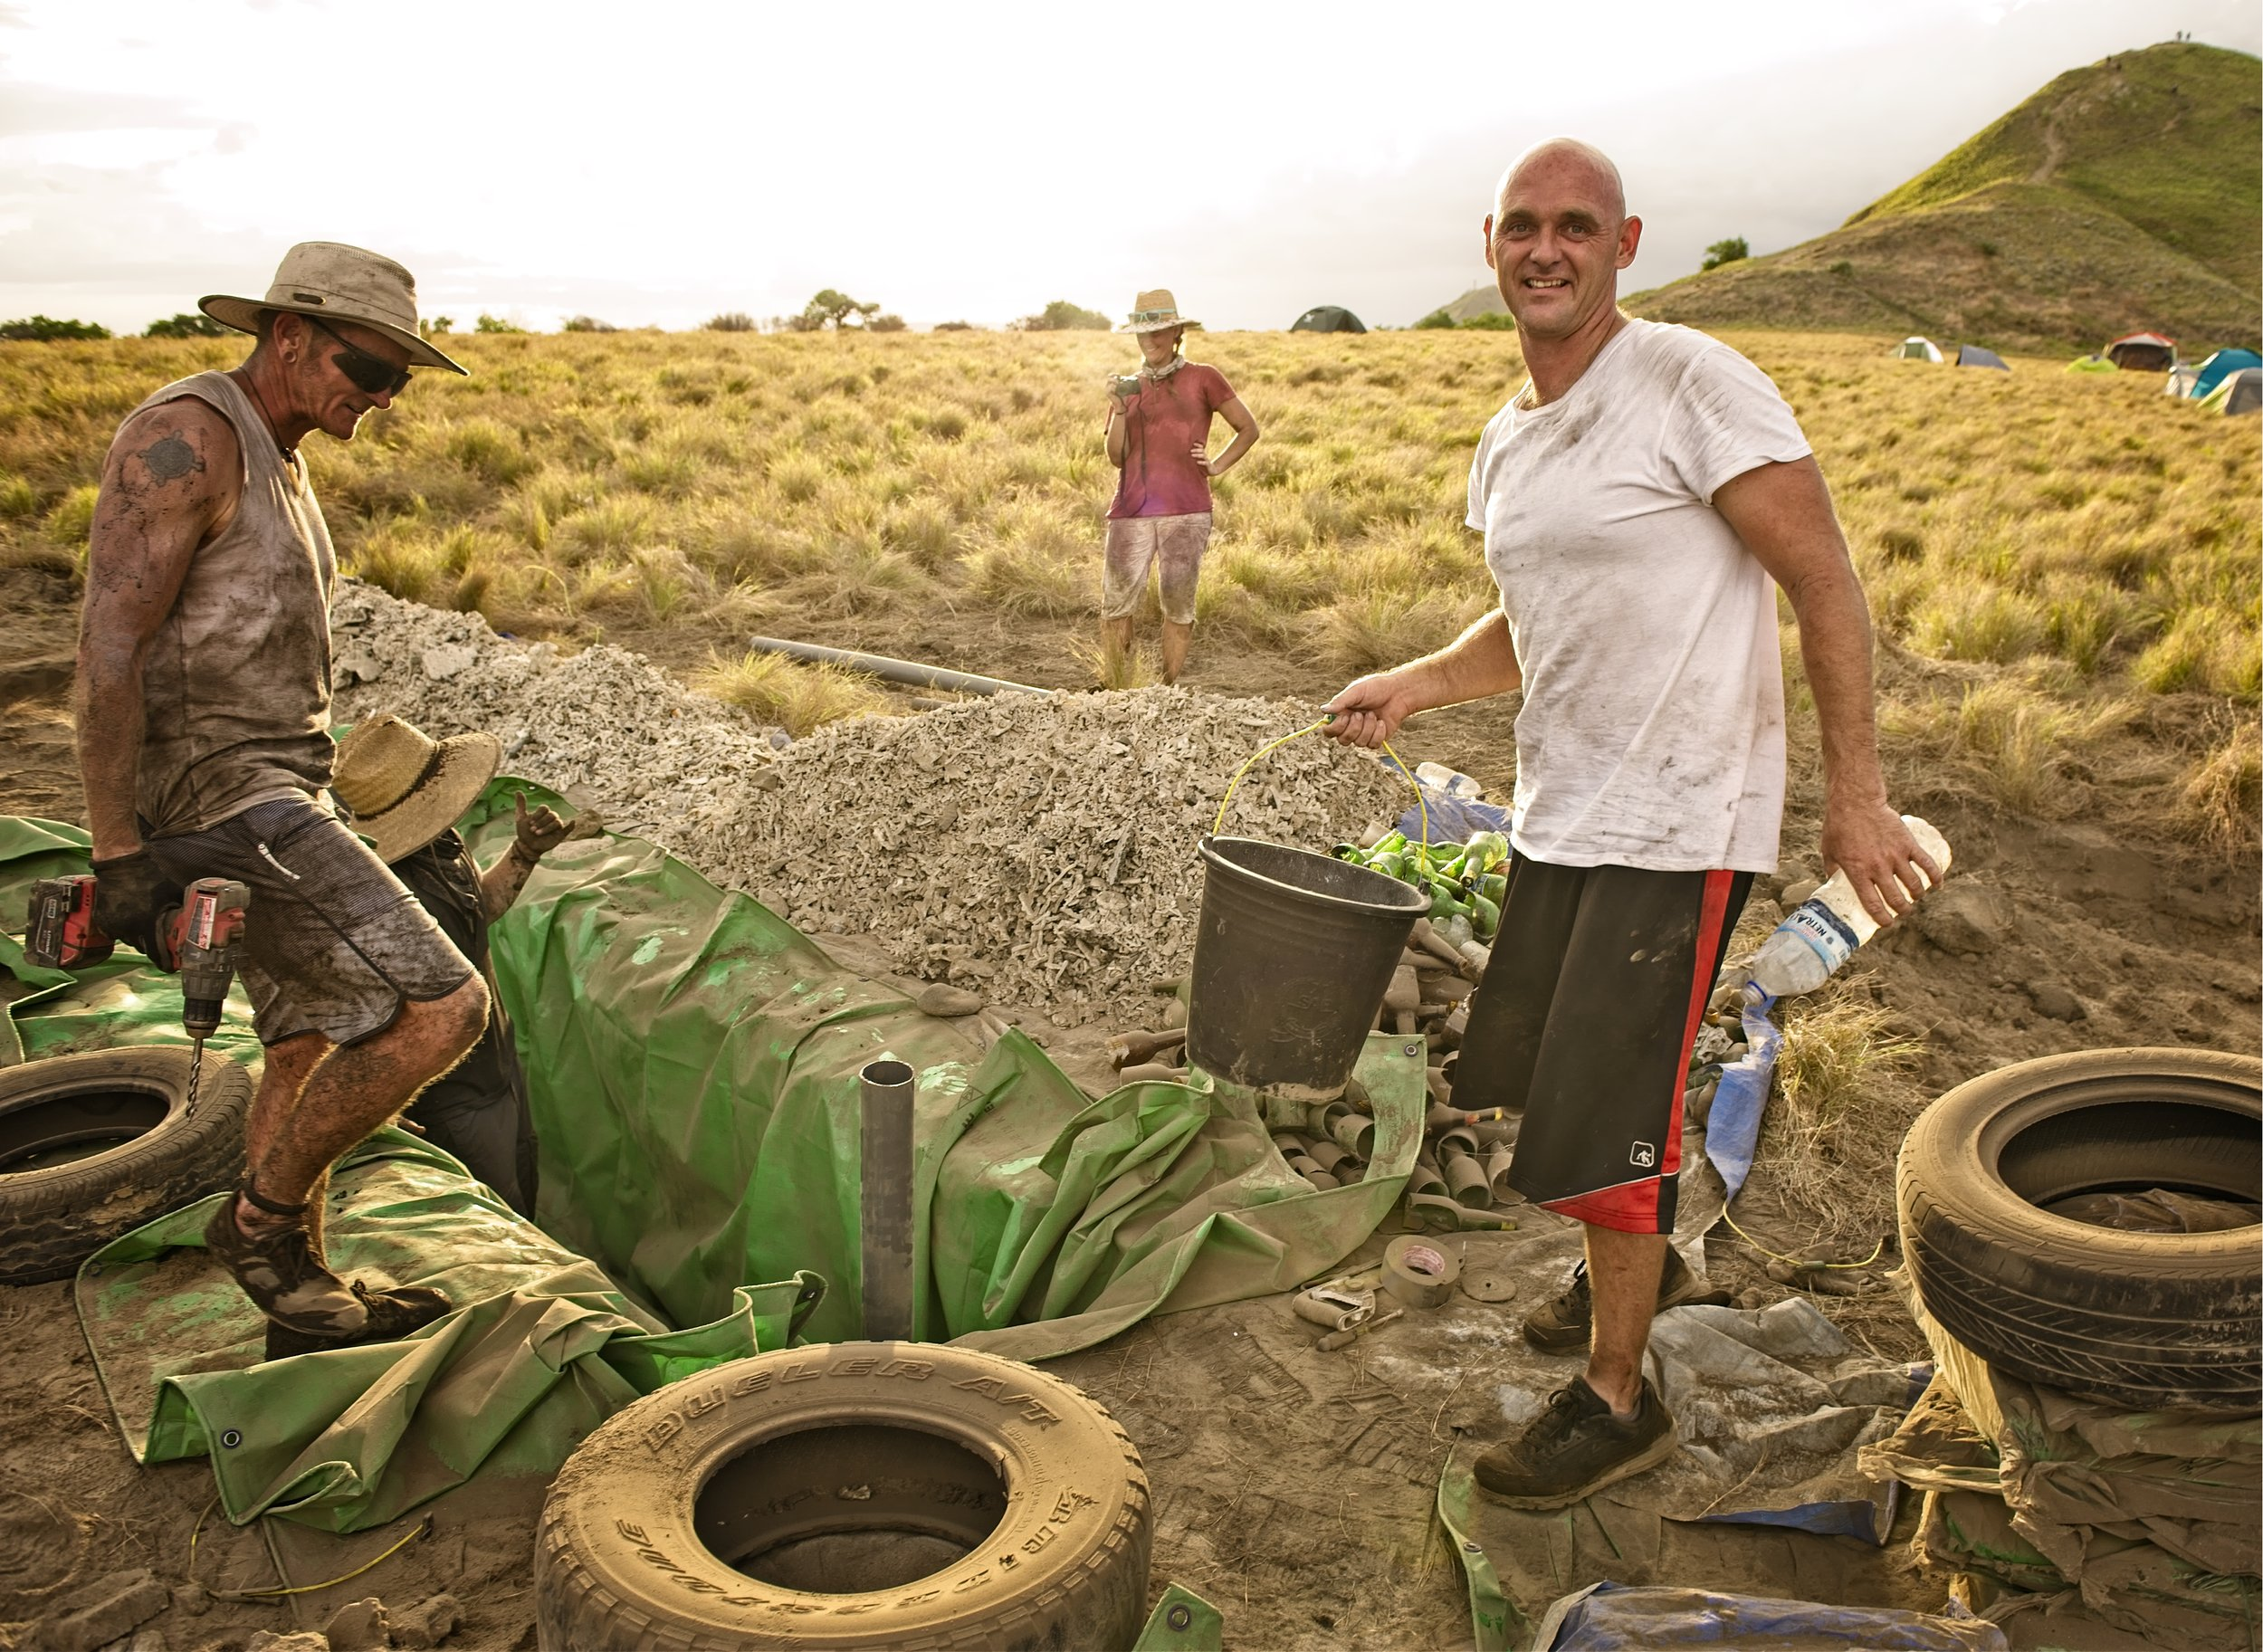 - Earthship designs first collect the rain water for drinking and living purposes, then recycle it to feed the plants in and around the build. Here one of the planters